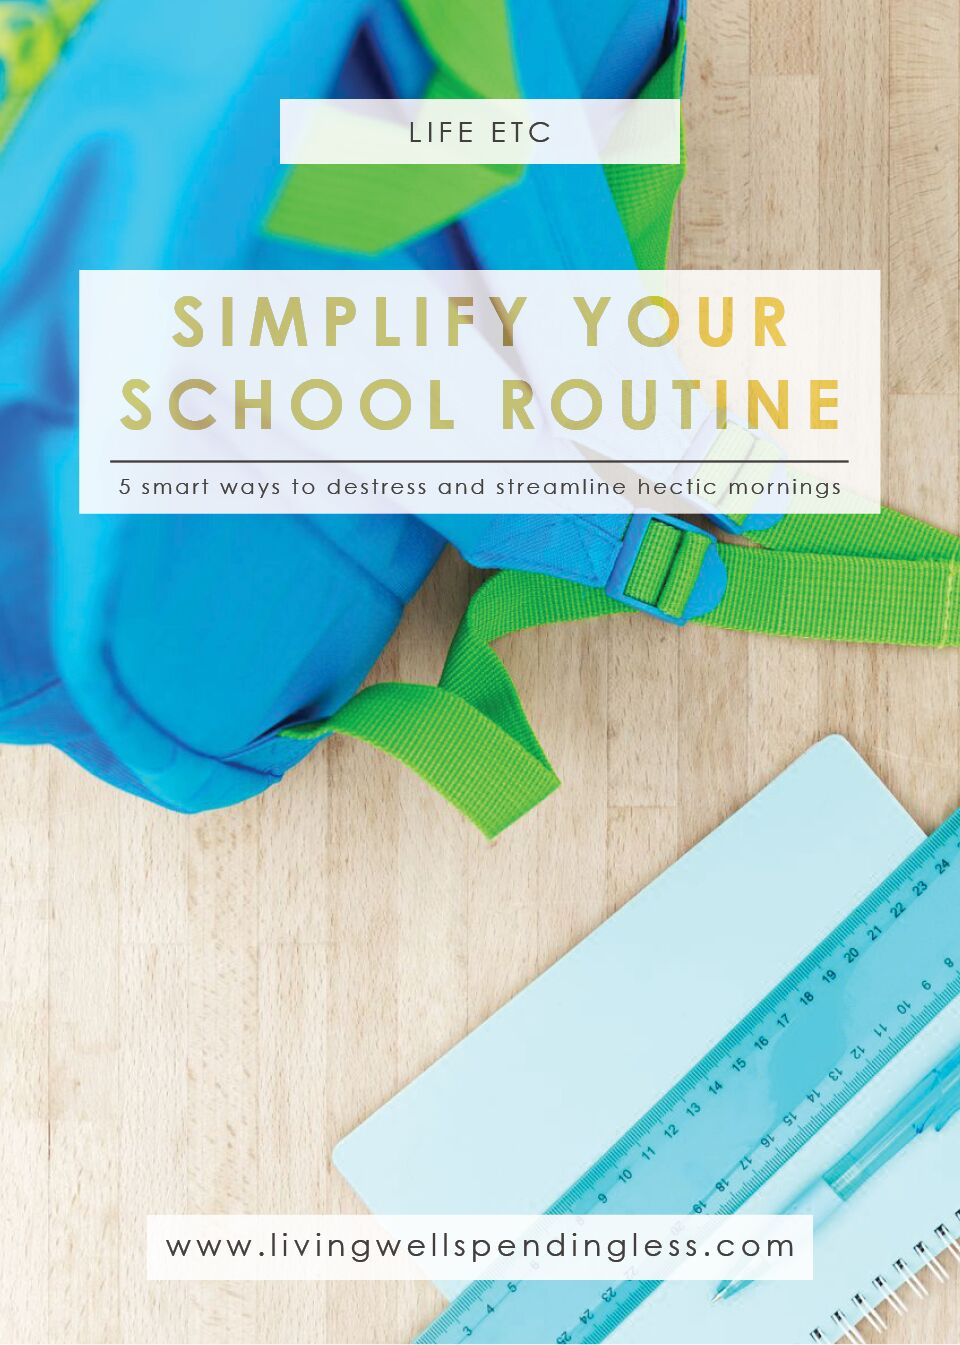 5 Ways to Simplify Your School Routine | 5 Smart Ways to Destress and Streamline Hectic Mornings